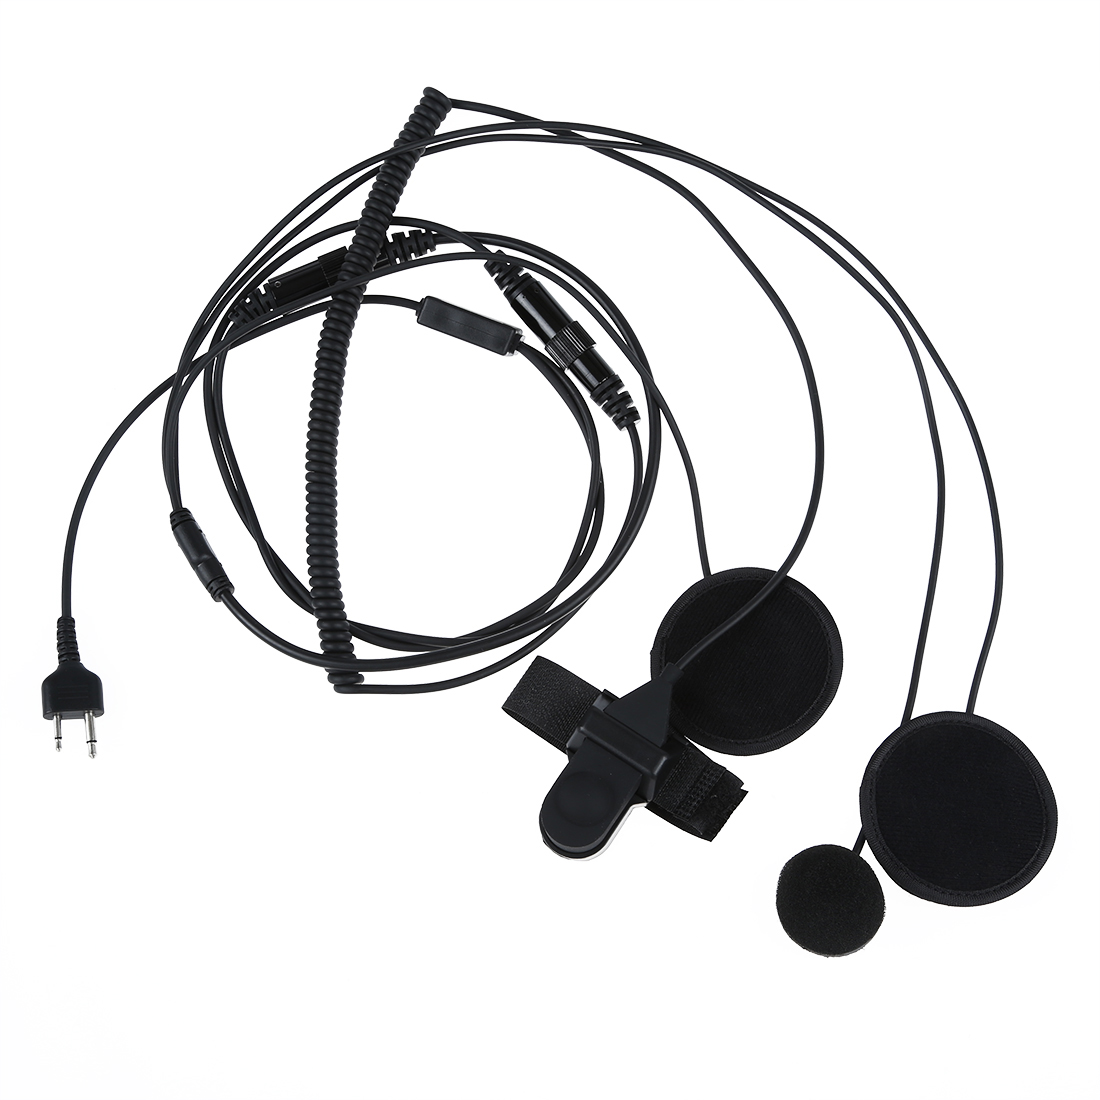 ФОТО Wholesale5pcs*2 pin two-way radios Full-face motorcycle moto bike helmet headset earphone microphone for Icom Maxon Yaesu vertex